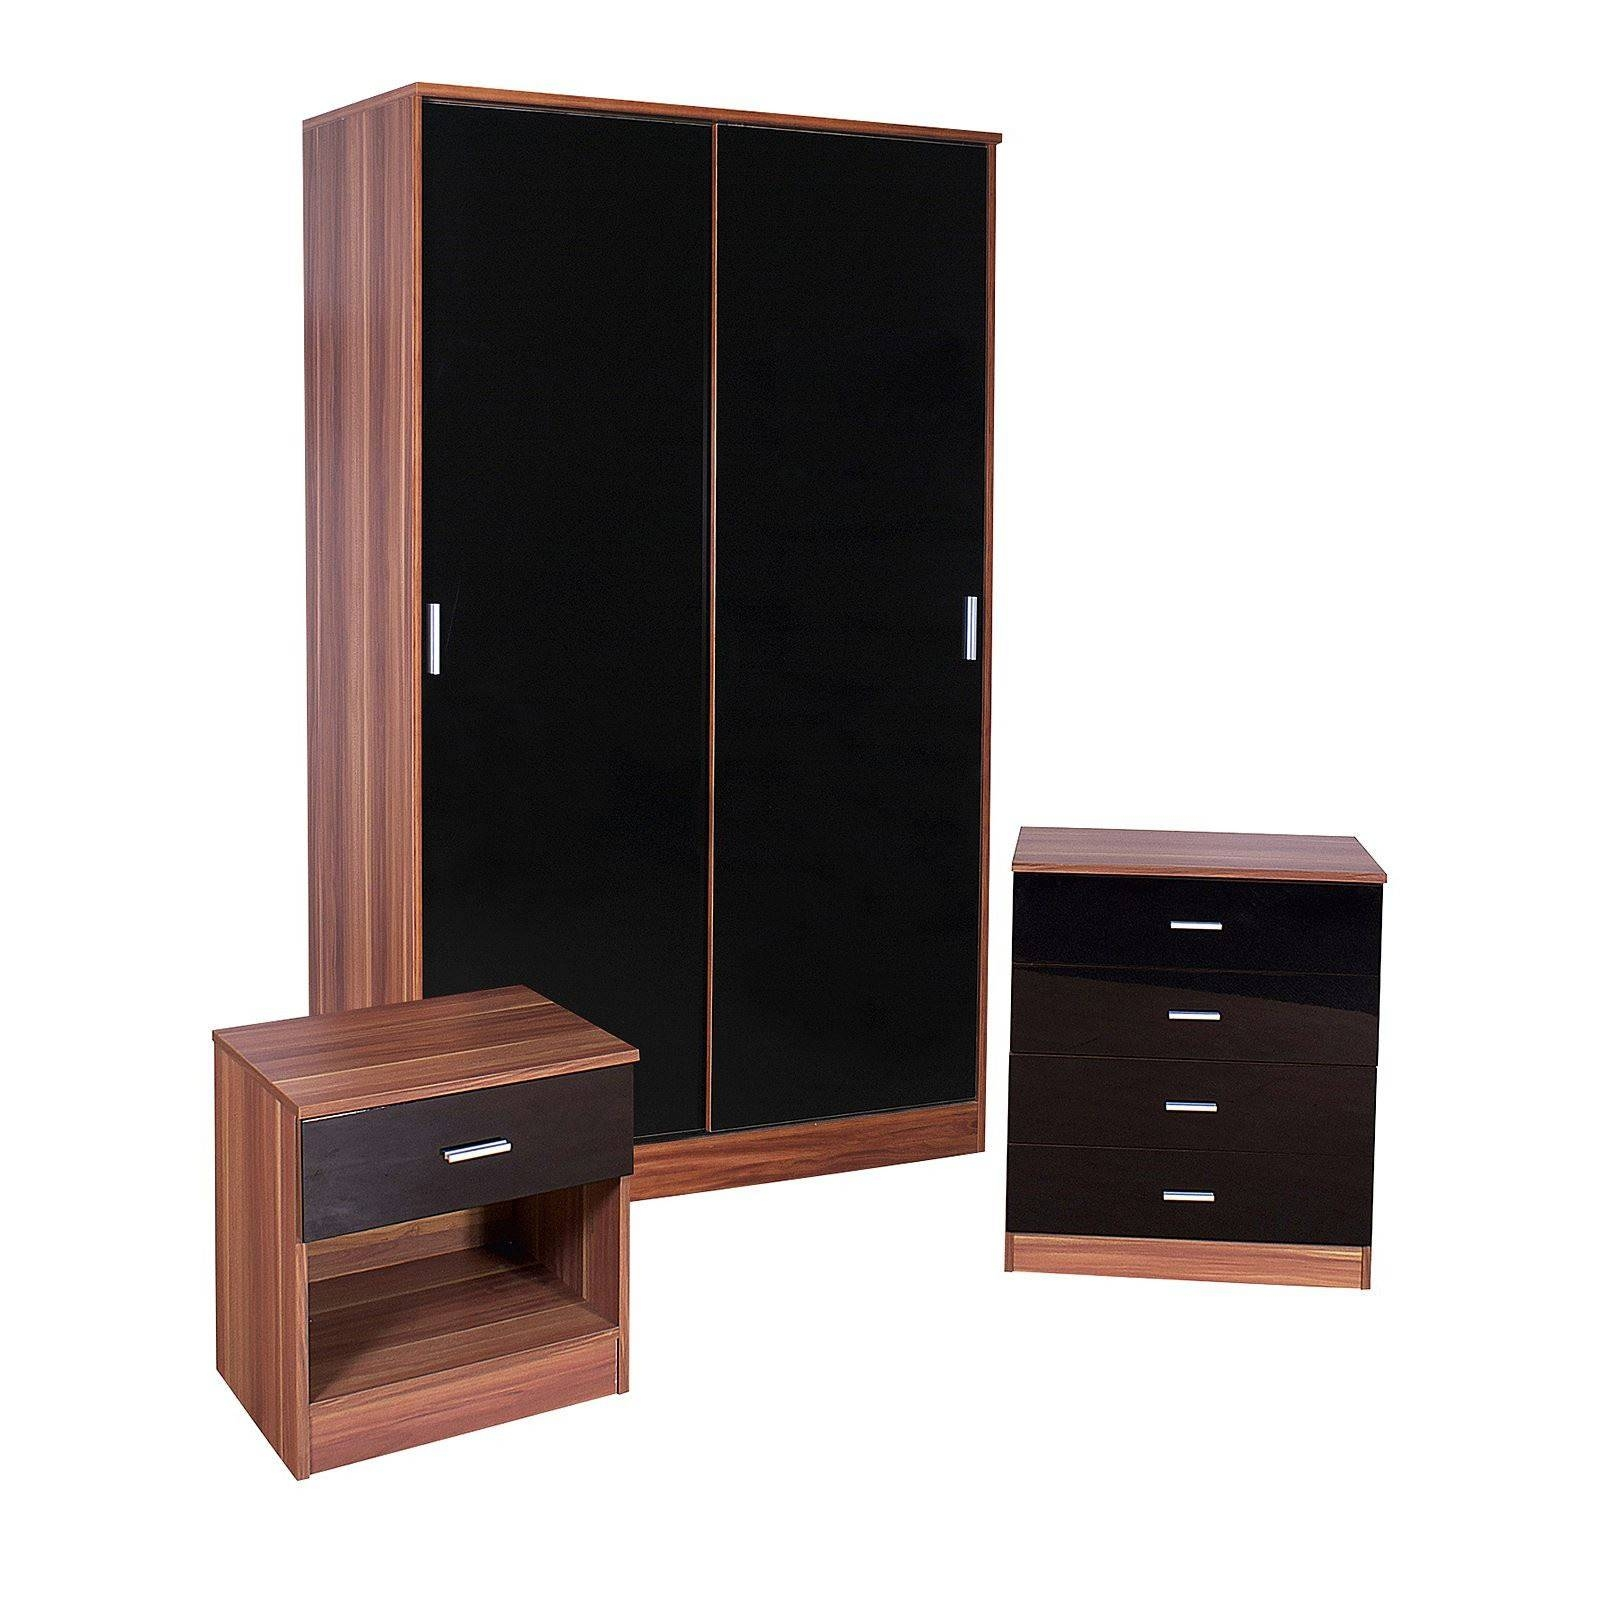 Bedroom Furniture 3 Piece Set Black Gloss & Walnut Wardrobe regarding Wardrobes Sets (Image 3 of 15)